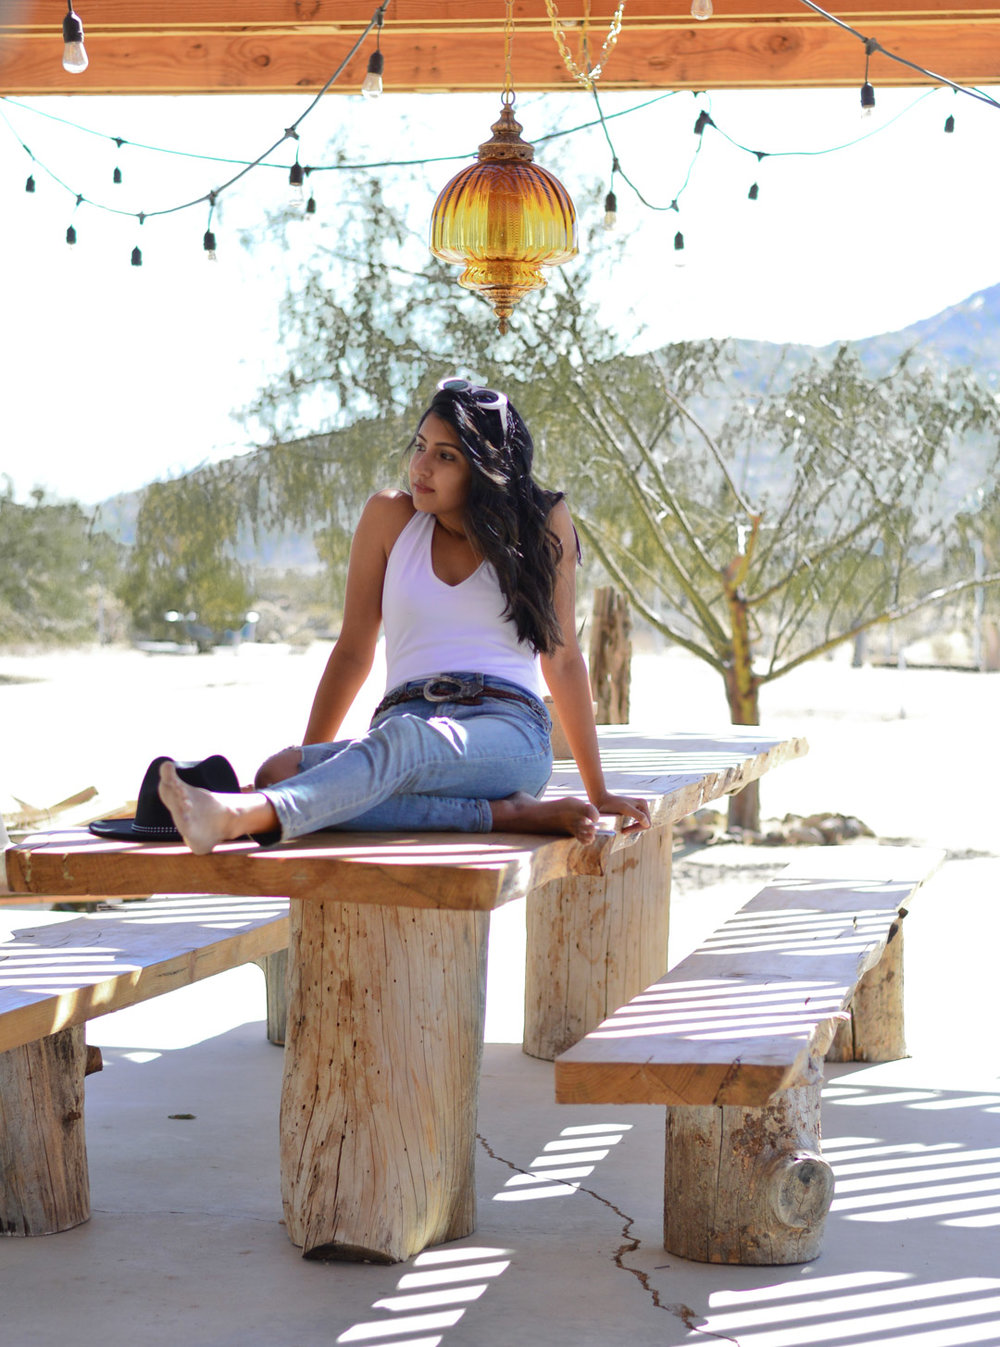 joshua-tree-boho-desert-chic-california-travel-airbnb-blogger-outfit 16